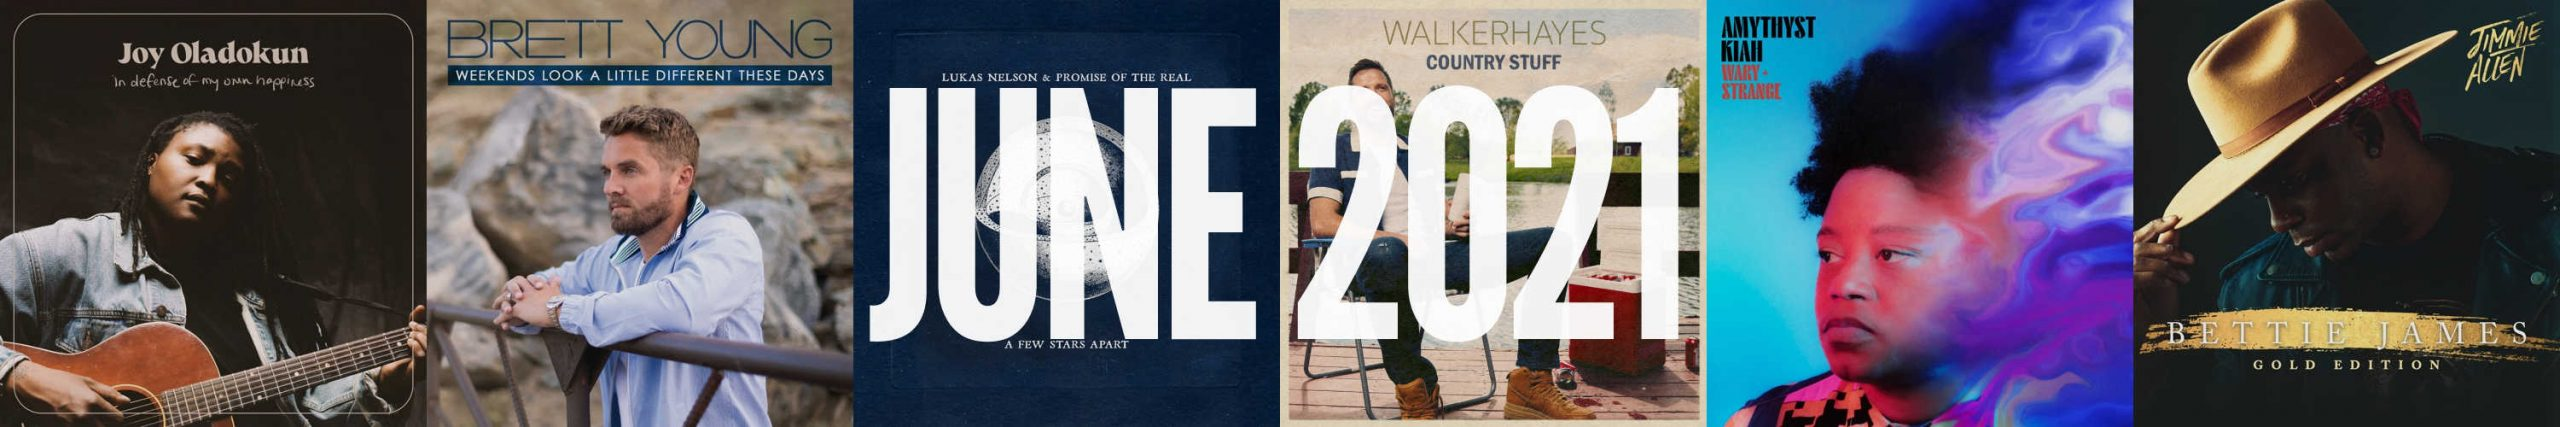 June 2021 New Country Album Releases